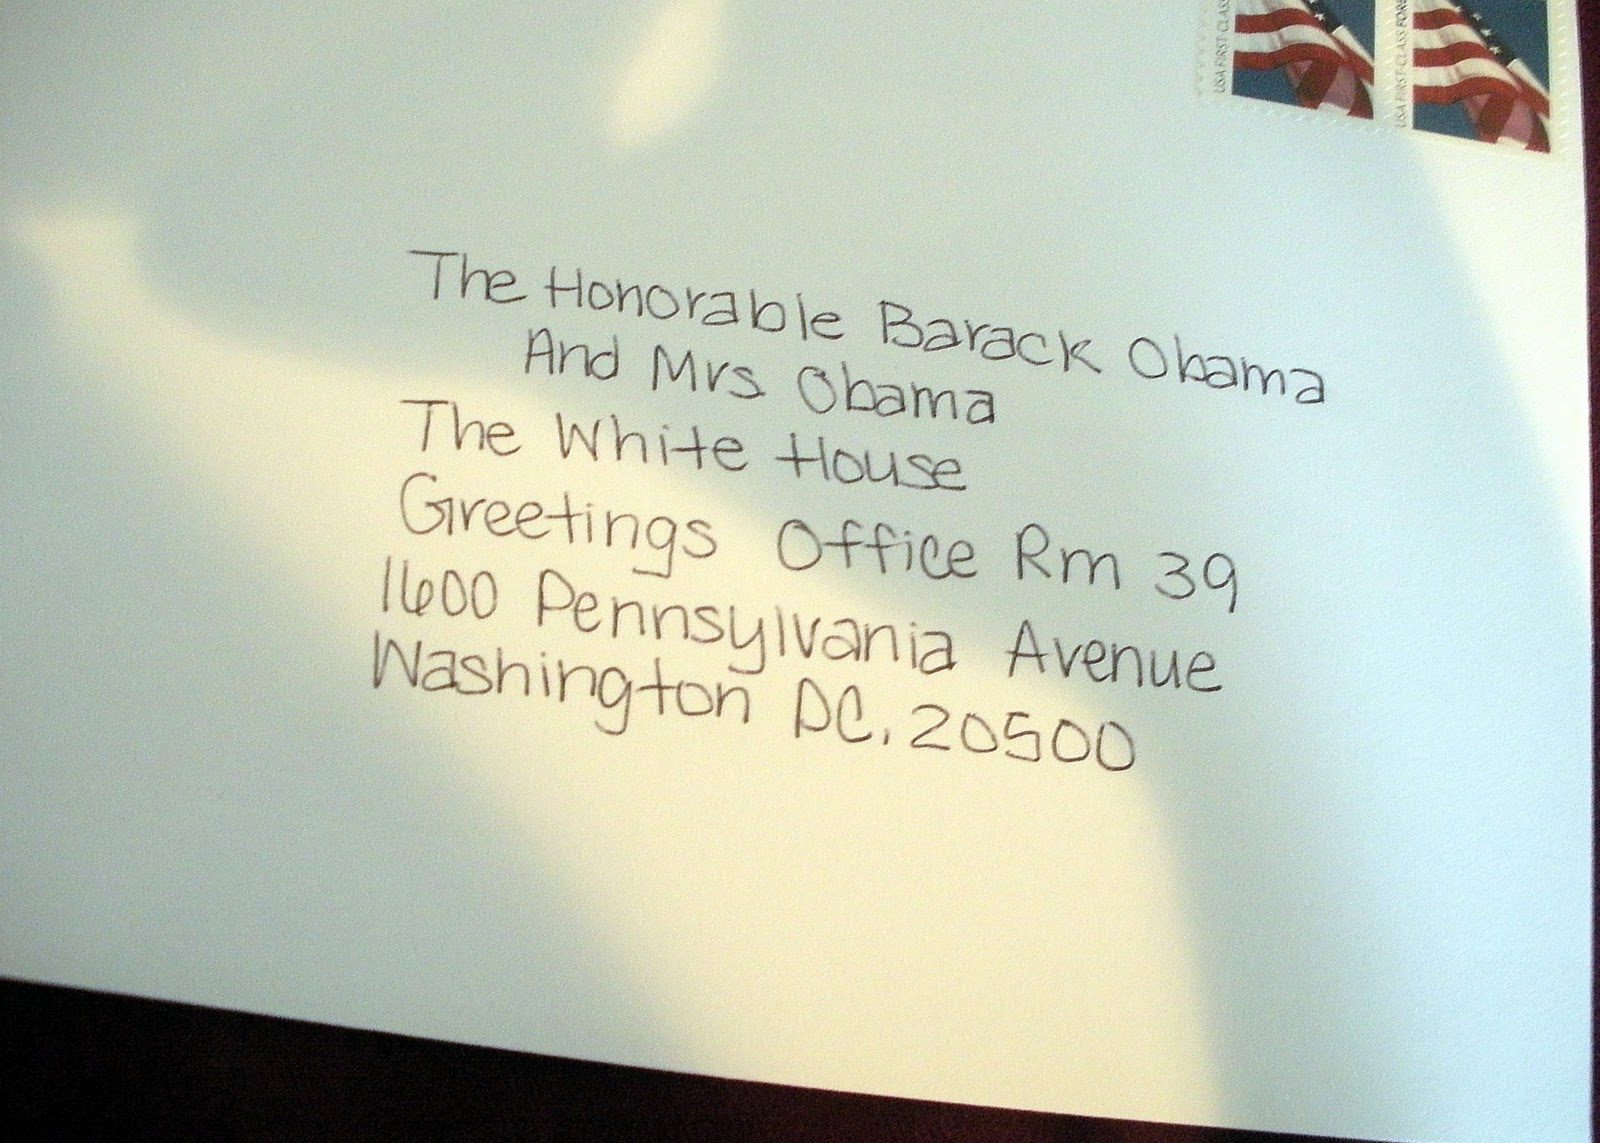 If you send a birth annoucement to the white house we got this in the mail m4hsunfo Choice Image